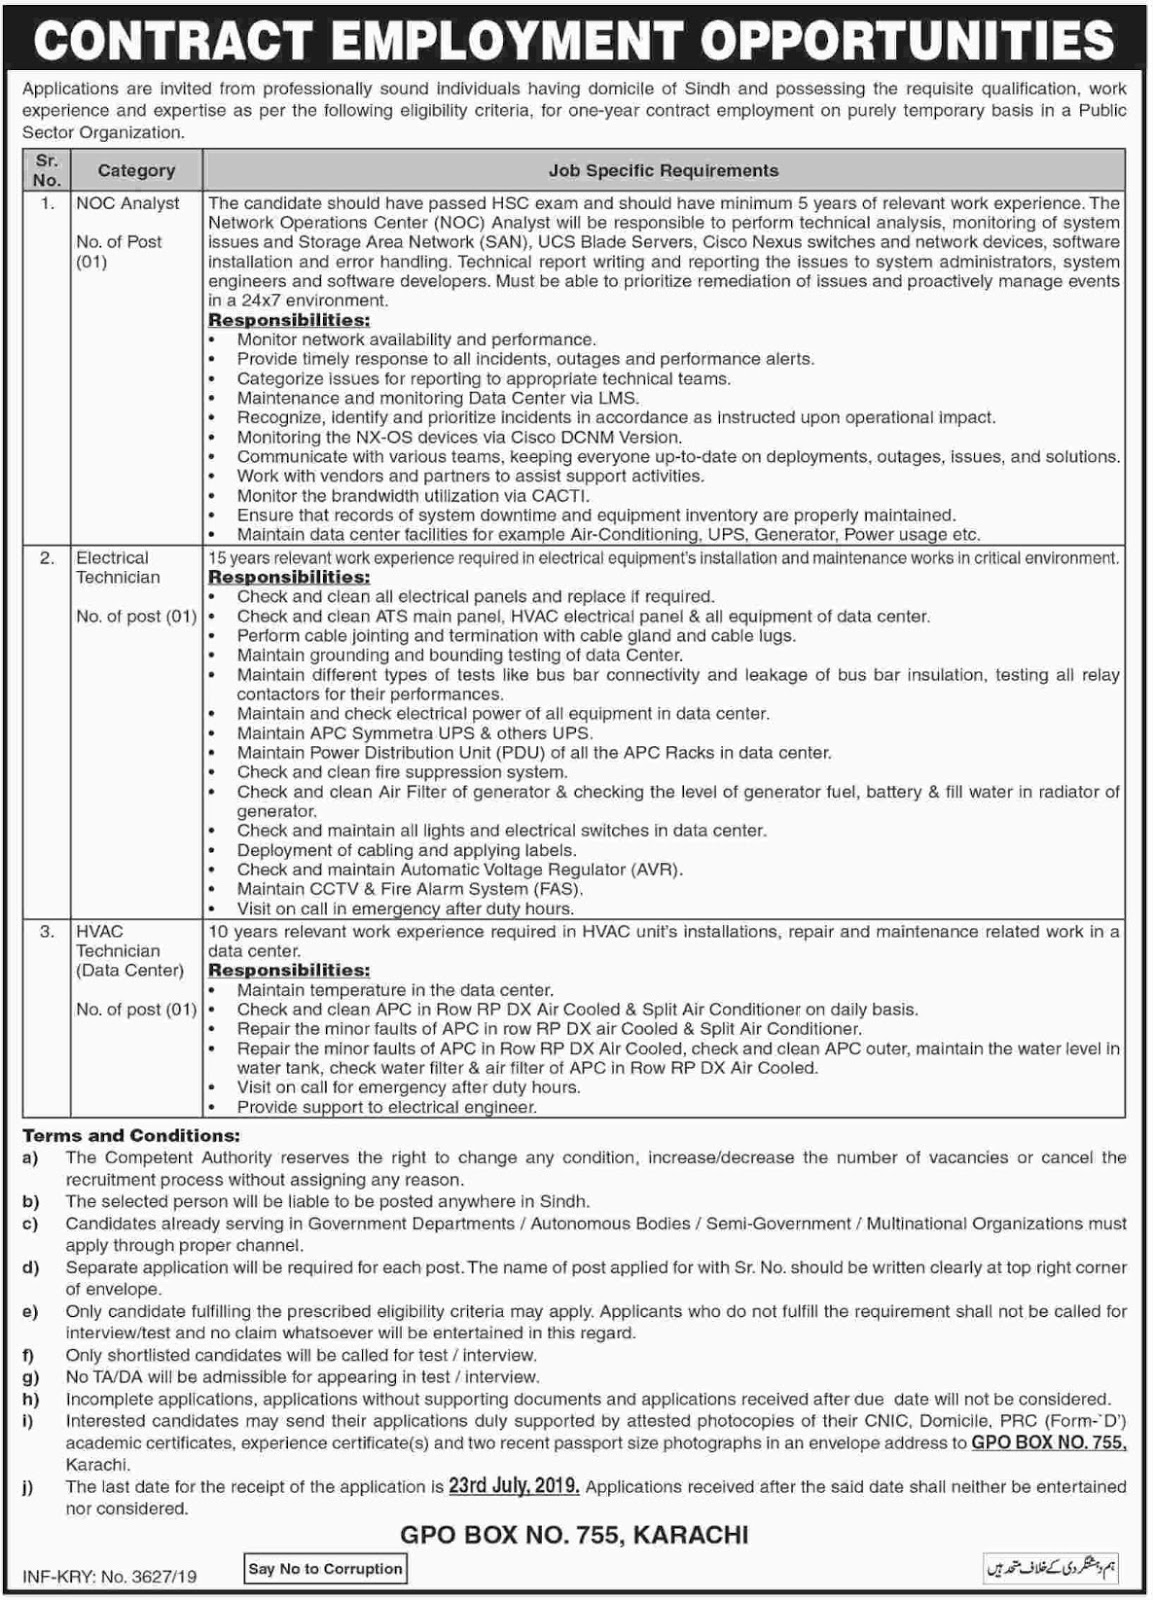 Public Sector Organization Jobs 2019 P.O.Box 755 Karachi